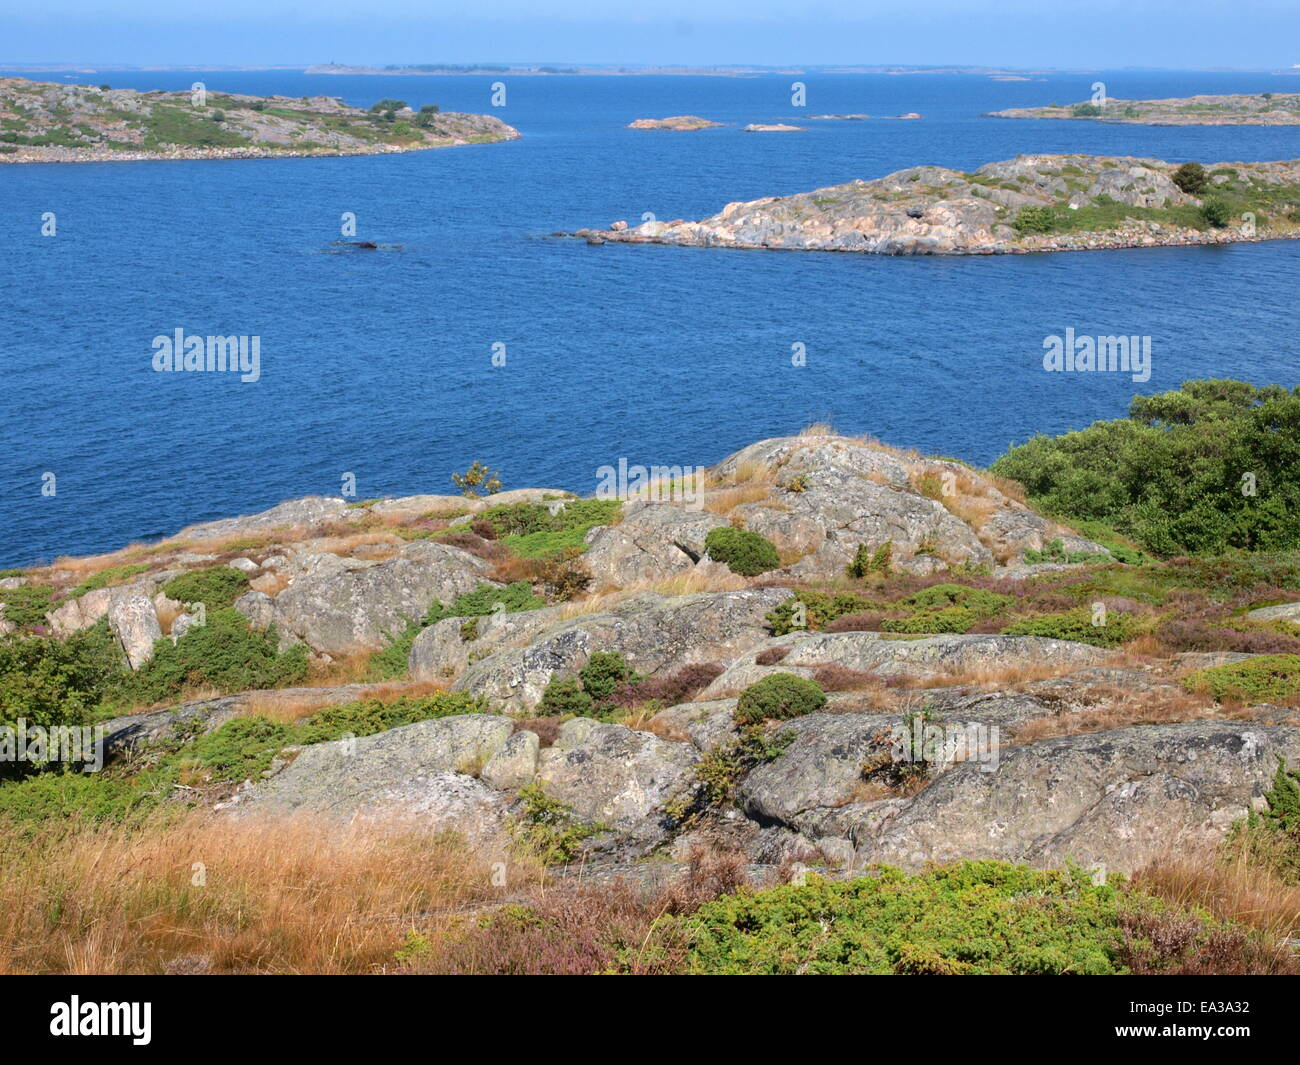 Archipelago of the Aland Islands, Kökar - Stock Image